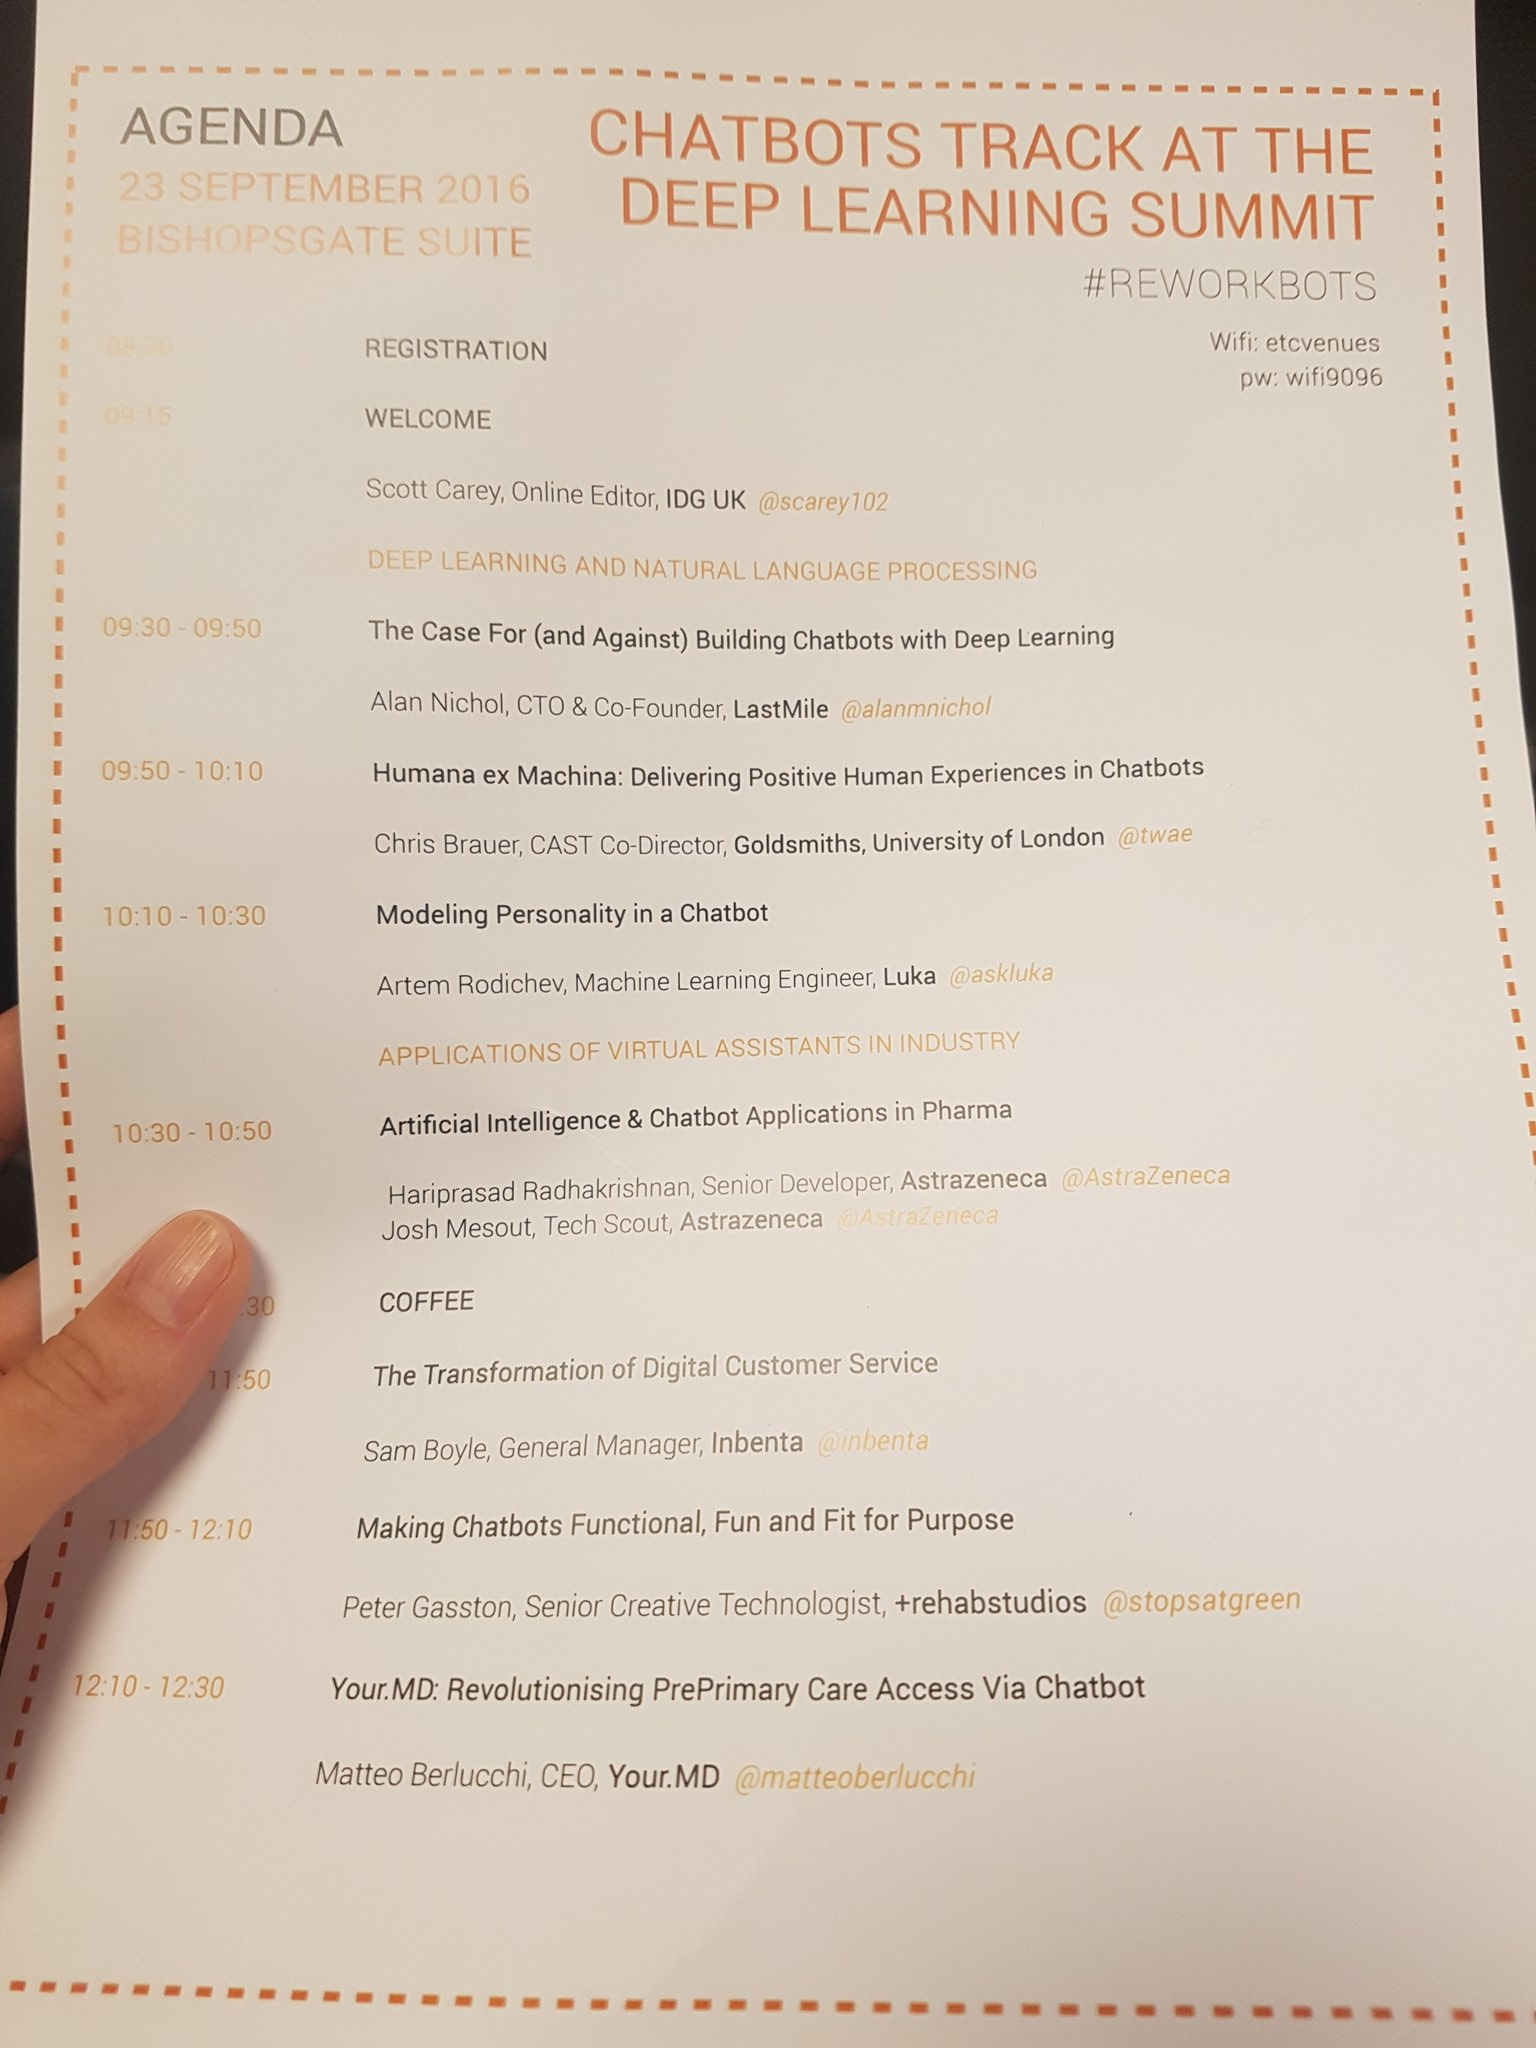 Day 2 at #reworkDL  - Great line up at #Chatbots track today  #deeplearning https://t.co/WVF8erjiLk